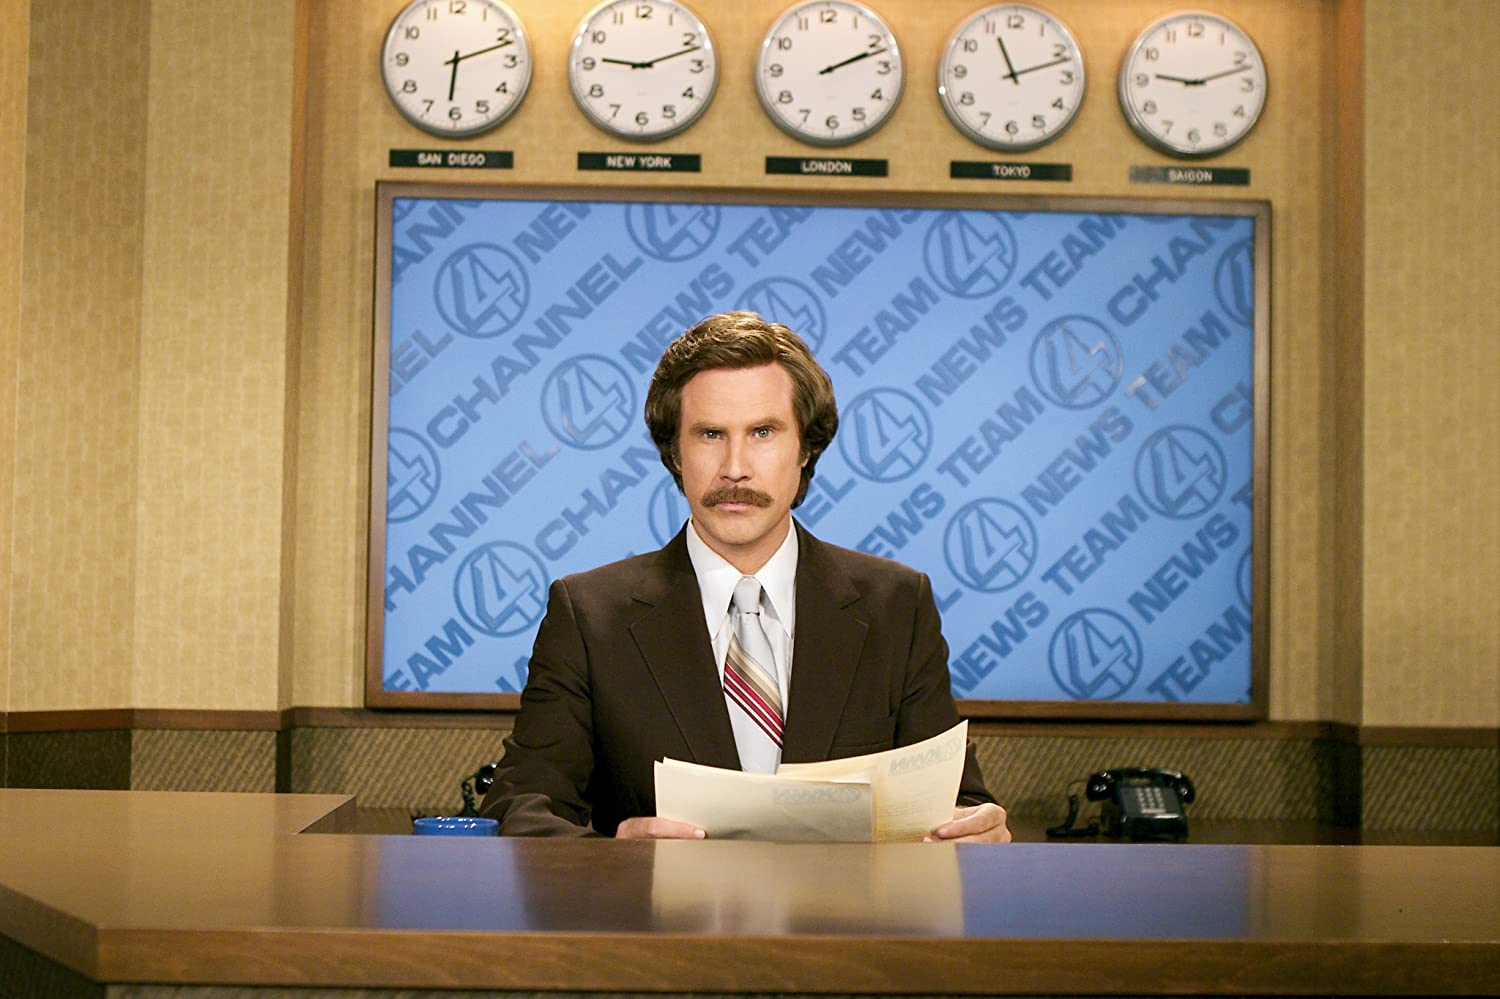 Will Ferrell in Anchorman: The Legend of Ron Burgundy (2004)